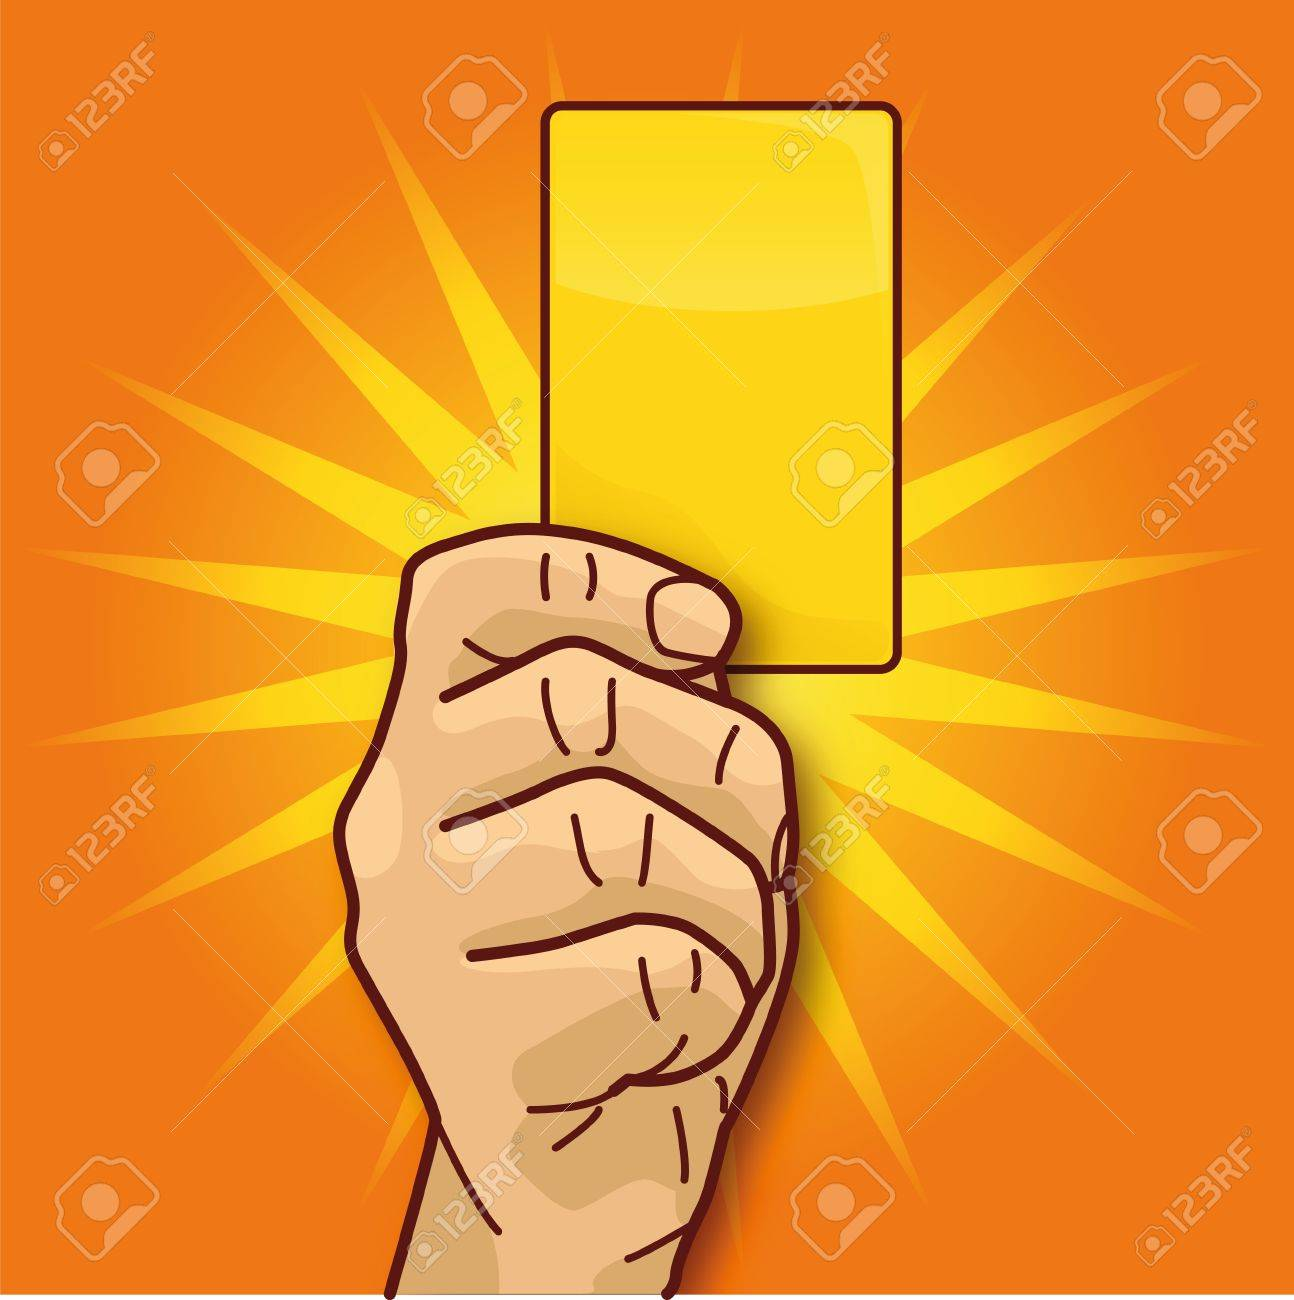 Punishment with the yellow card Stock Vector - 16219462